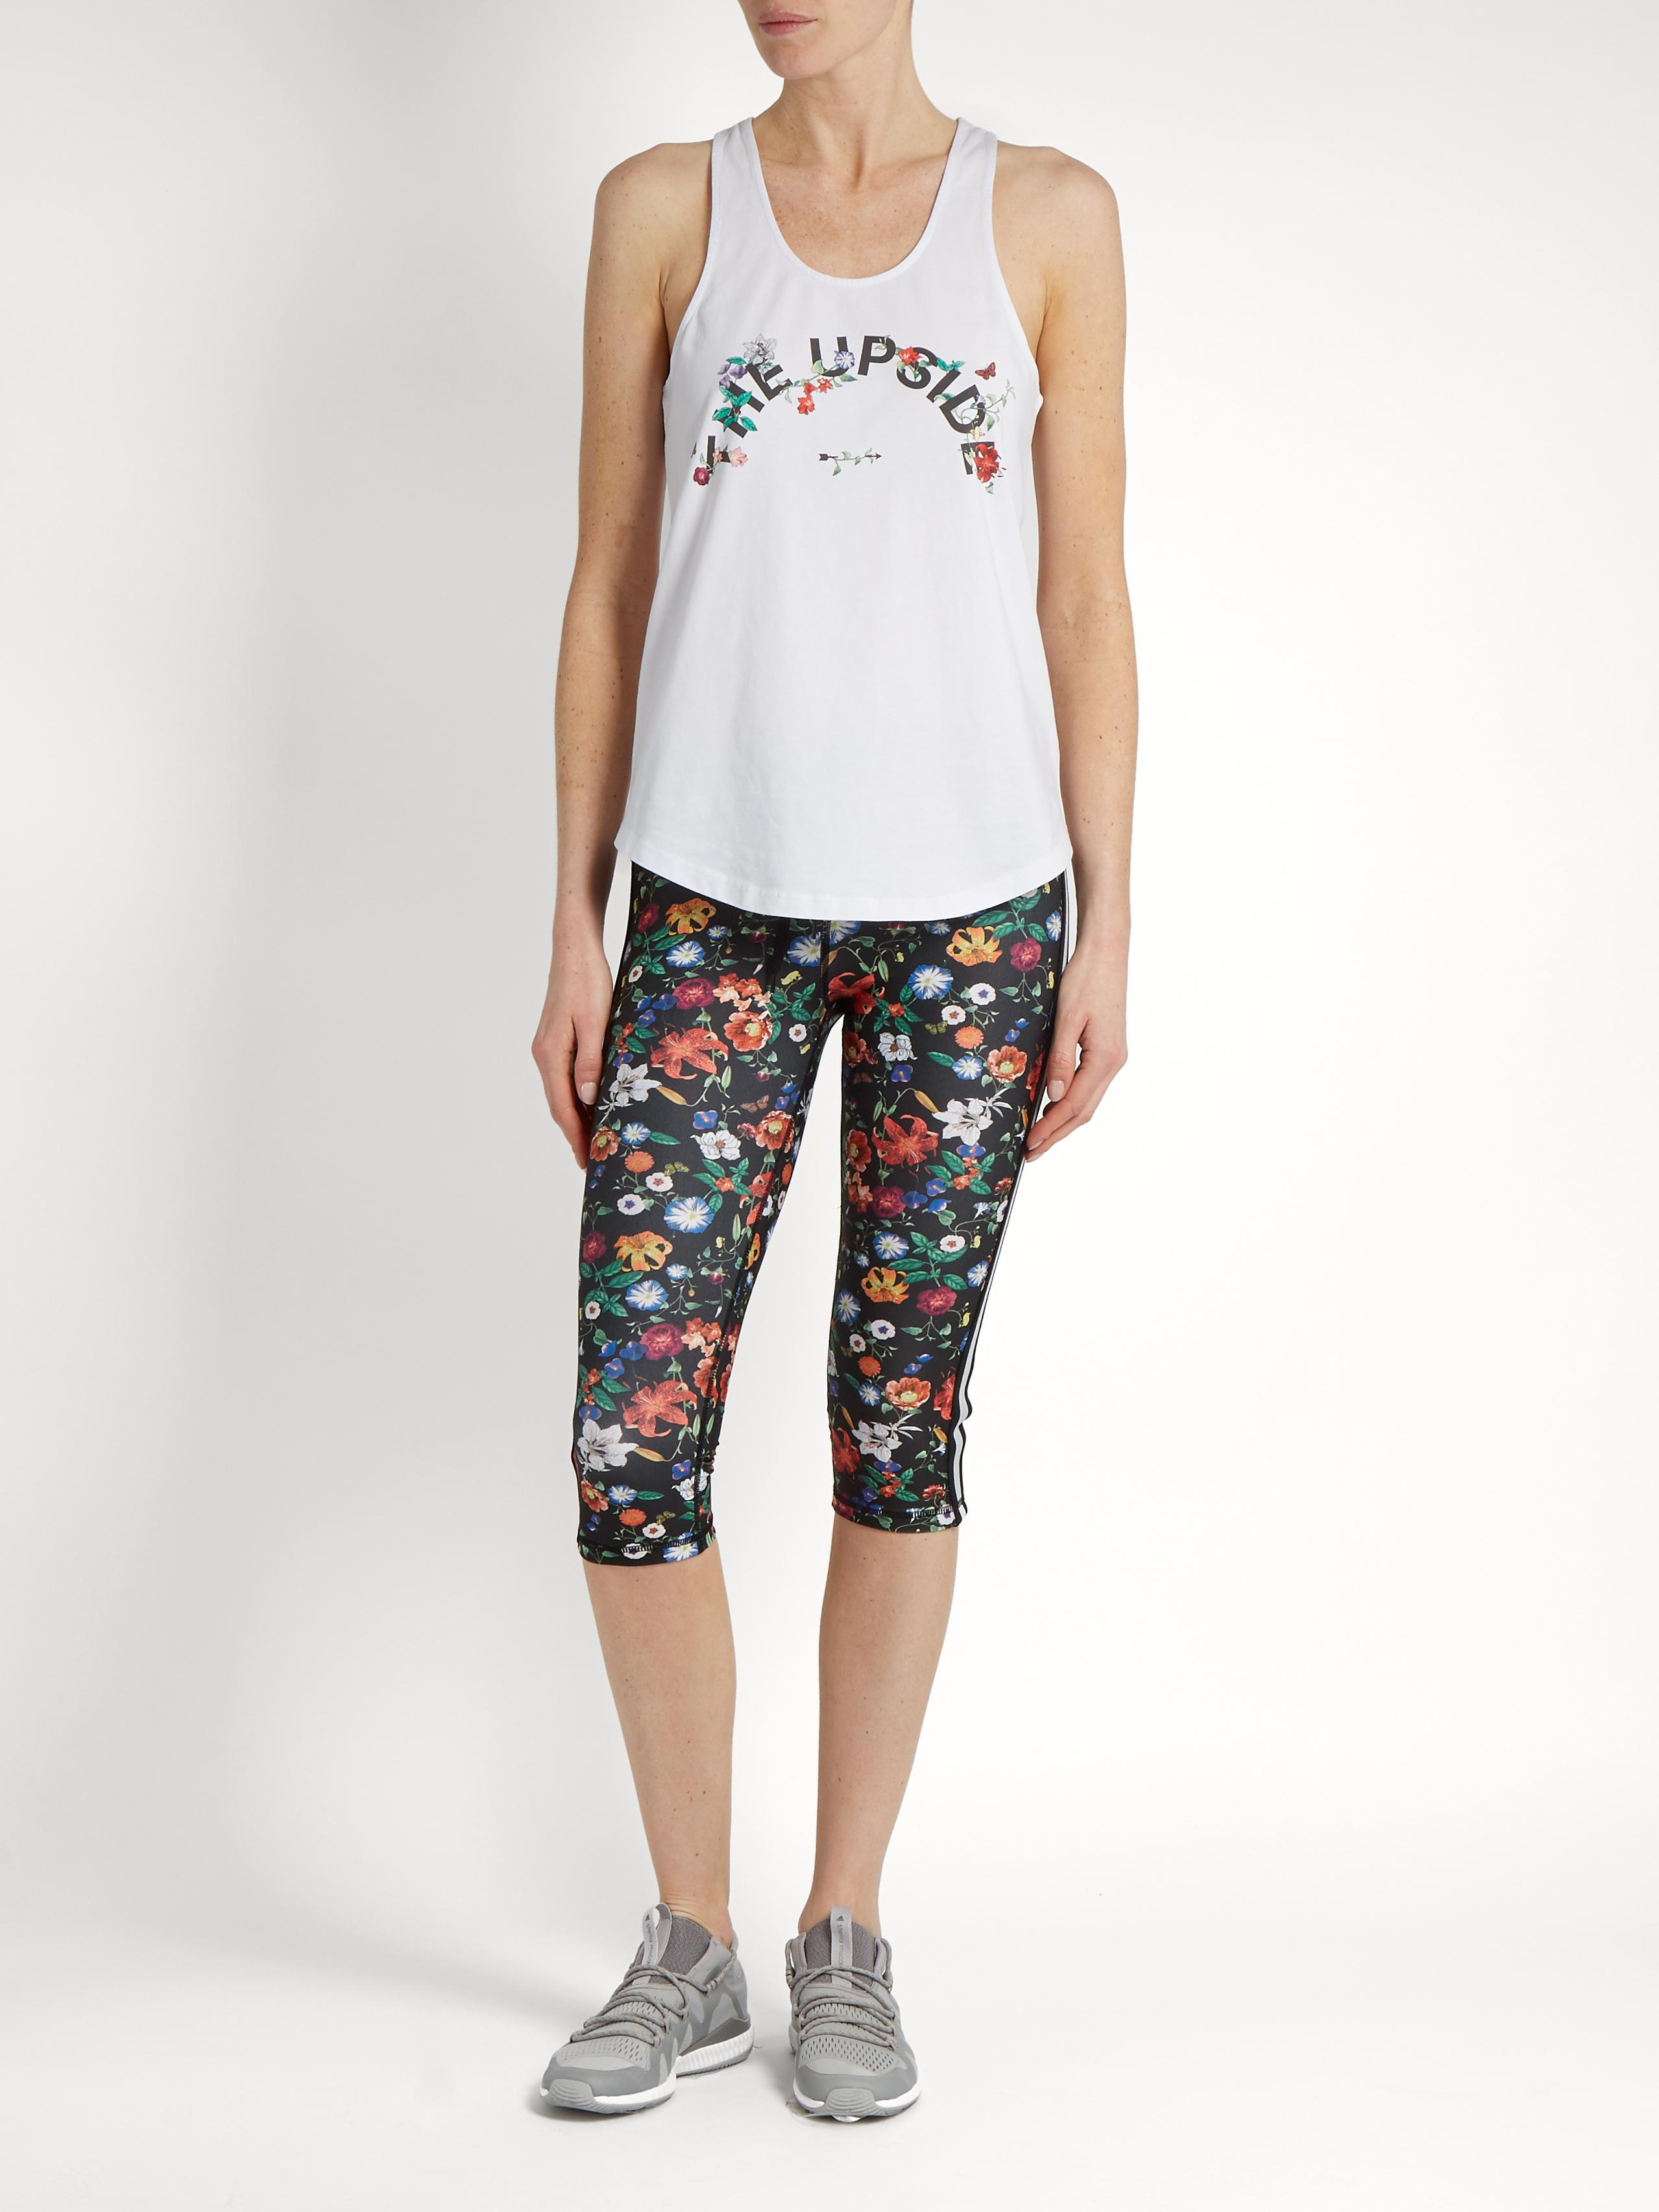 The Upside Cotton Issy Wildflowers-print Performance Tank Top in White